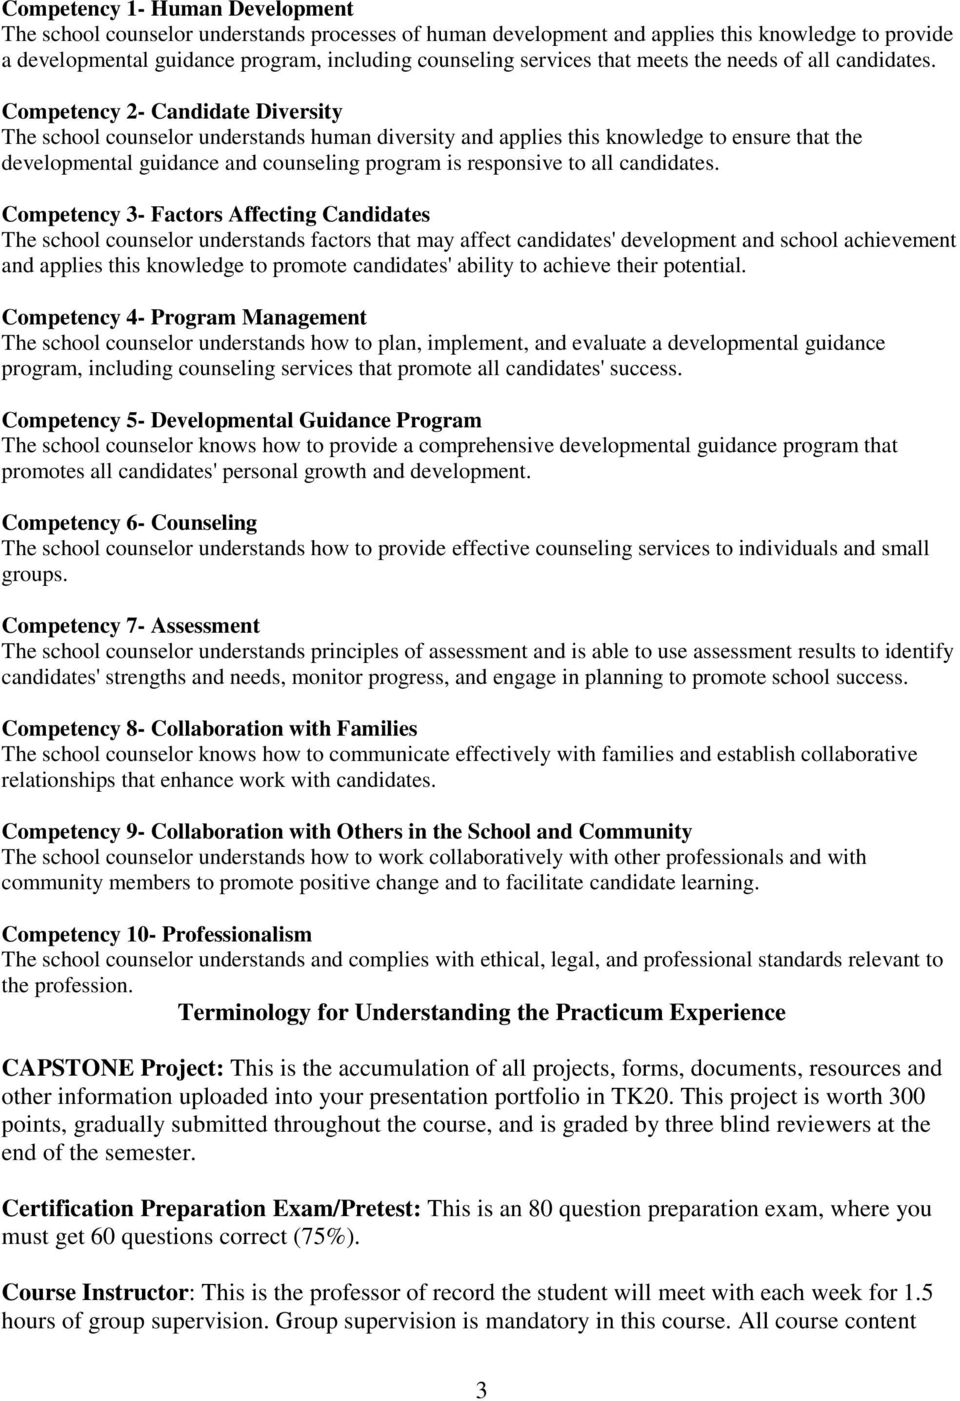 Competency 2- Candidate Diversity The school counselor understands human diversity and applies this knowledge to ensure that the developmental guidance and counseling program is responsive to all